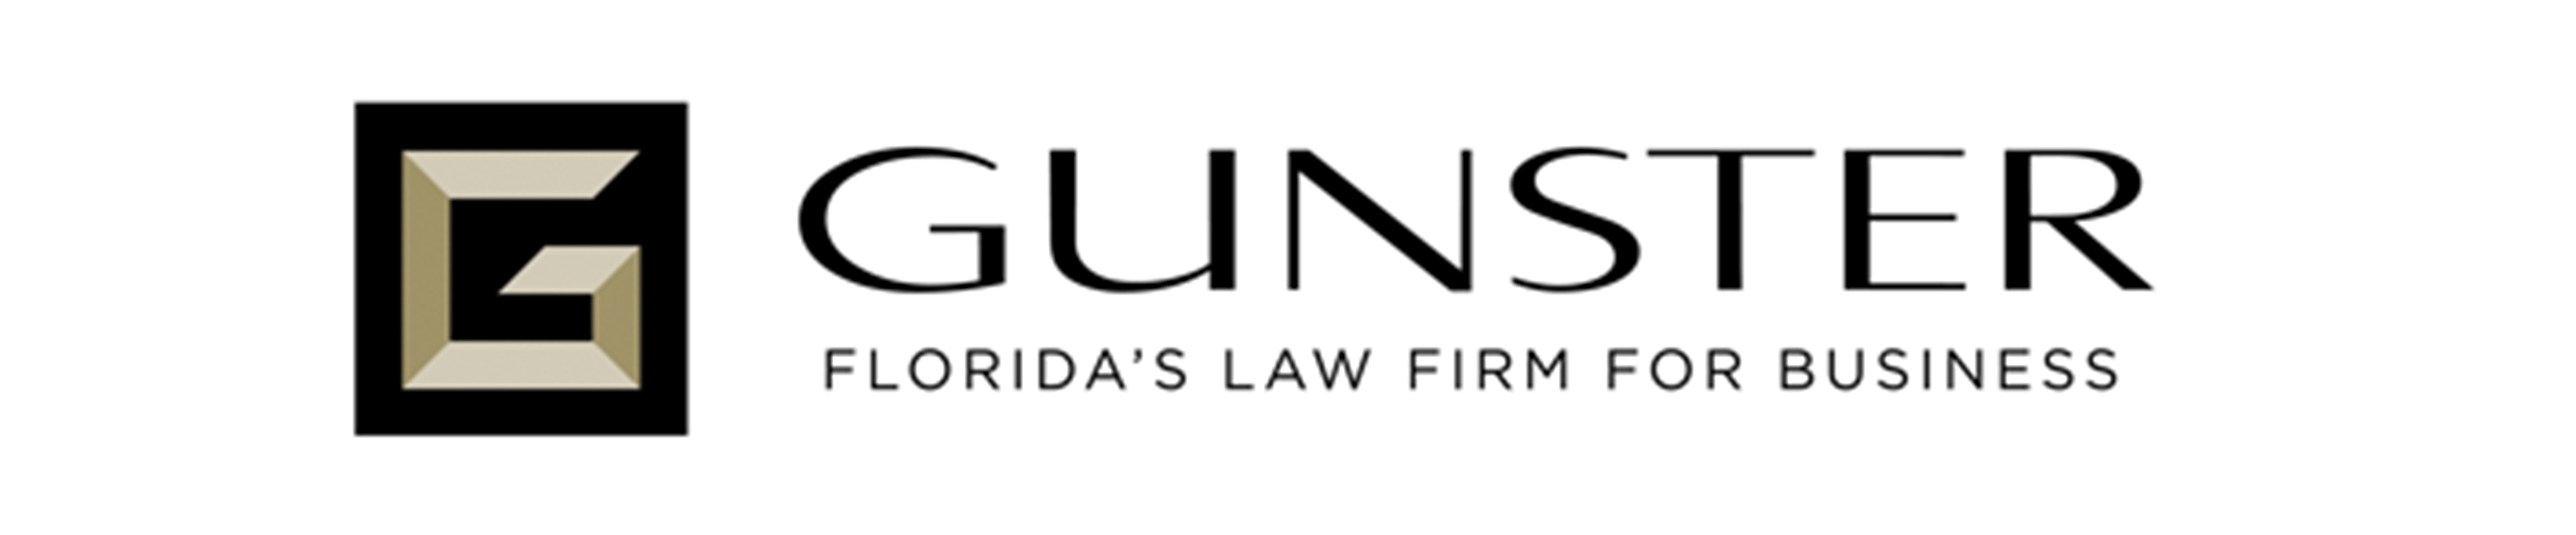 Gunster Law Firm logo in black on a white background